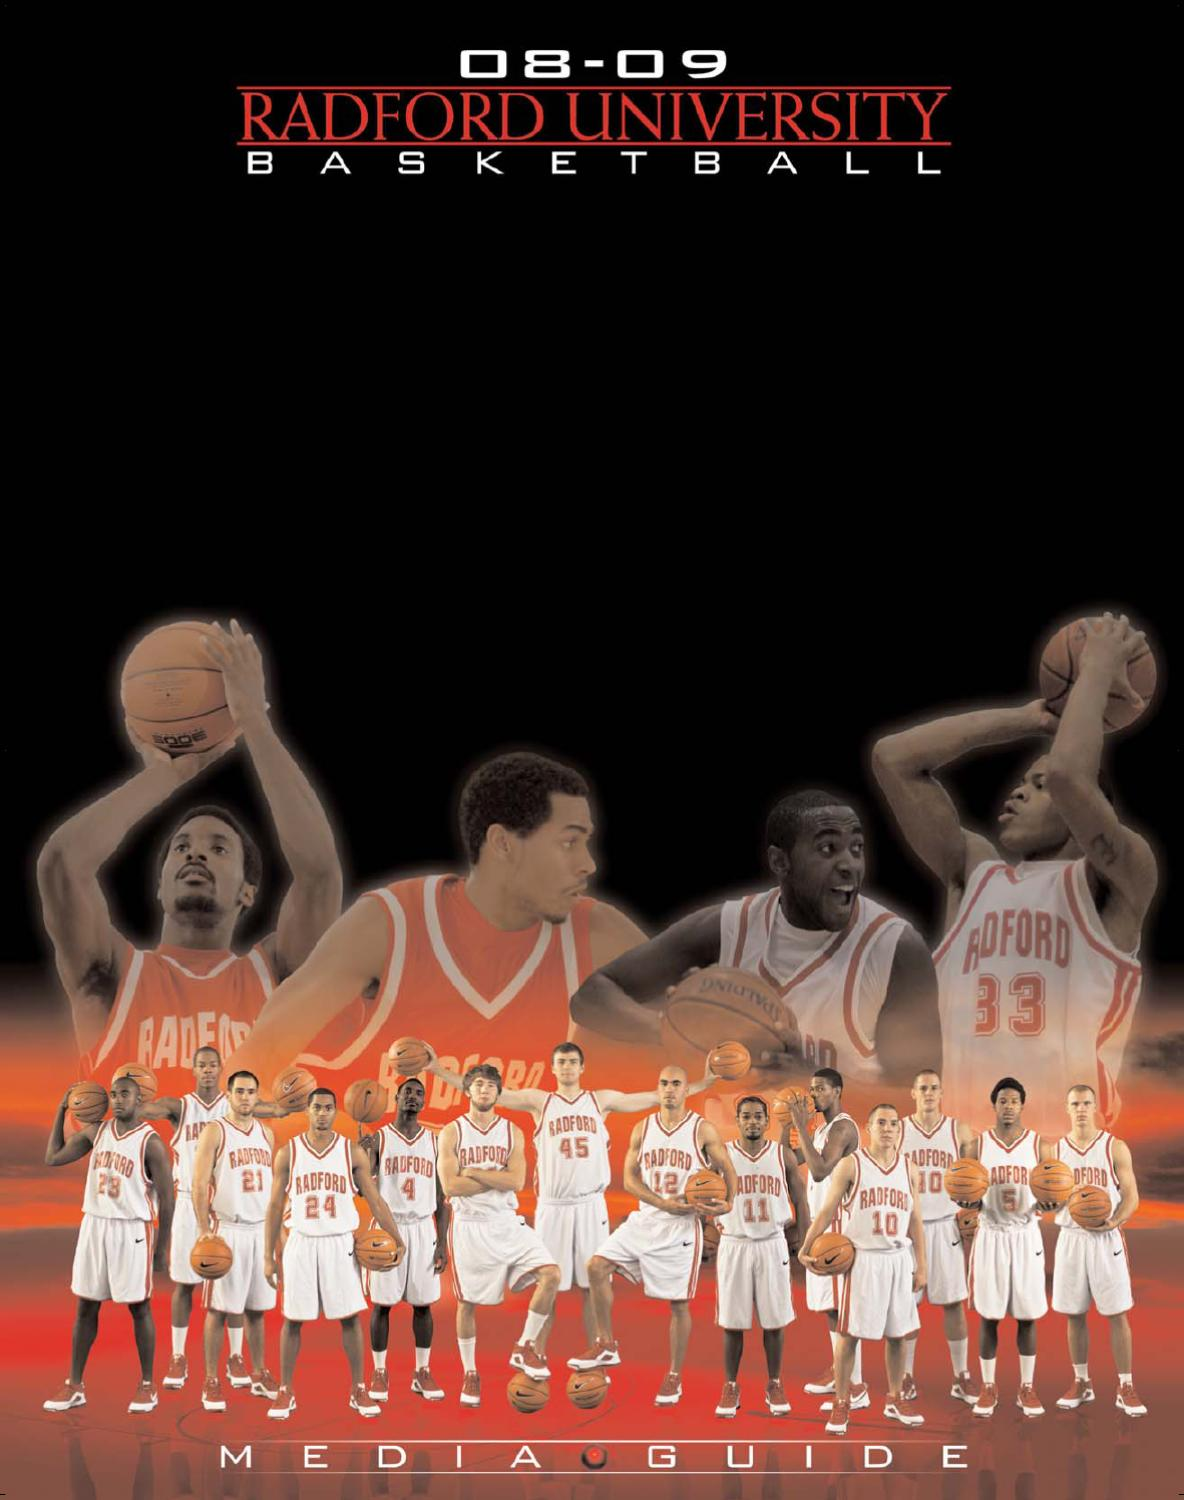 2008 09 radford men 39 s basketball media guide by radford for Conference table 1998 99